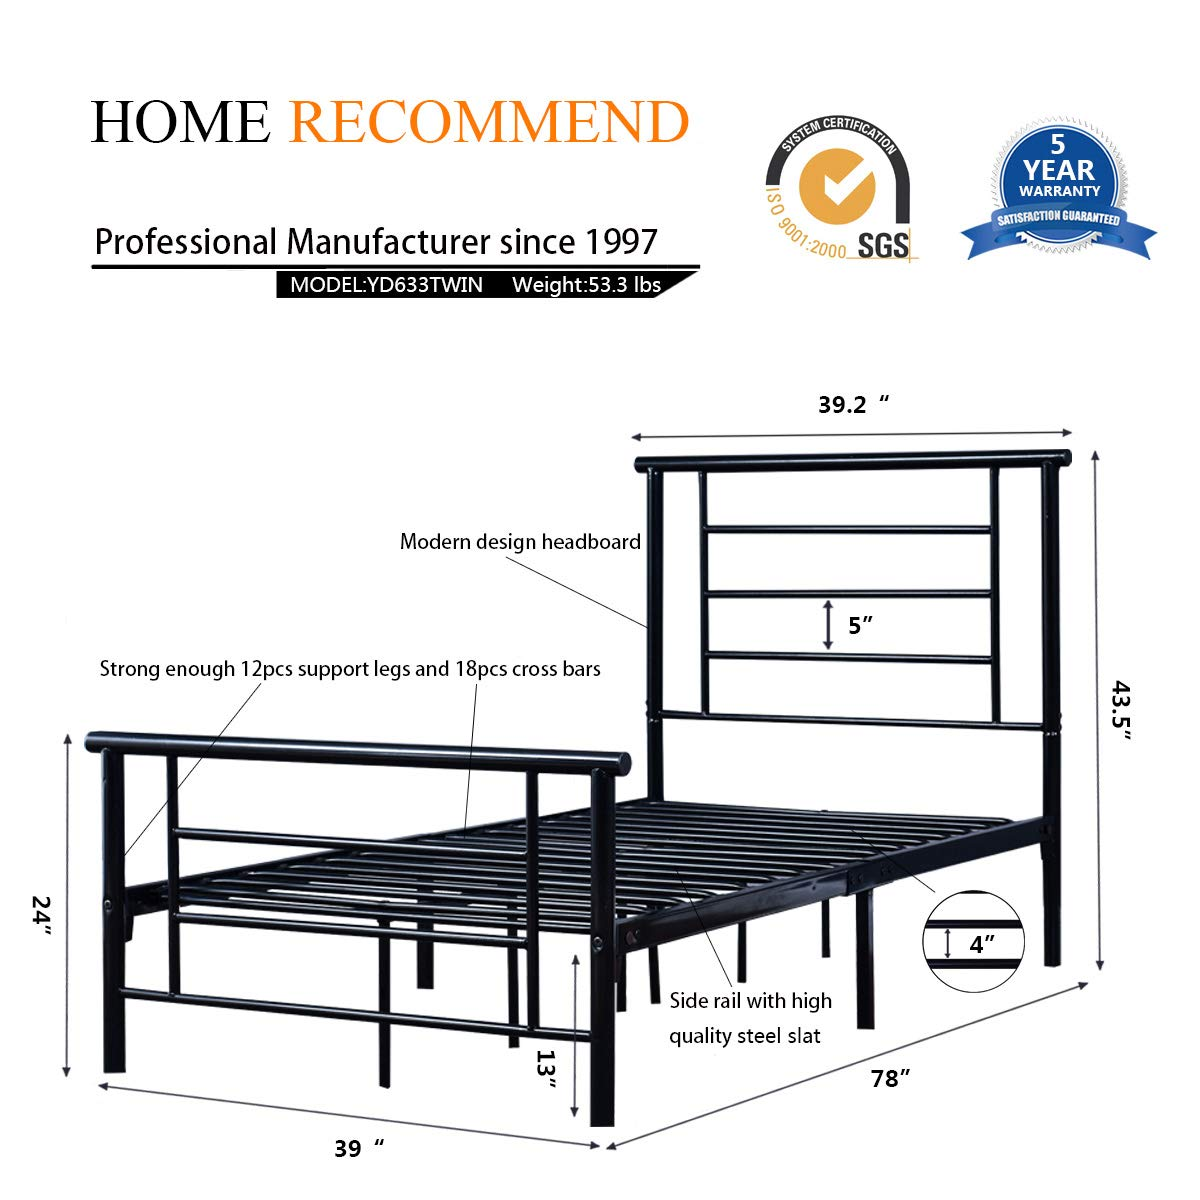 97e74b0cec184 HOMERECOMMEND Metal Bed Platform Box Spring Replacement Foundation with  Headboards Hevay Duty Steel Slats